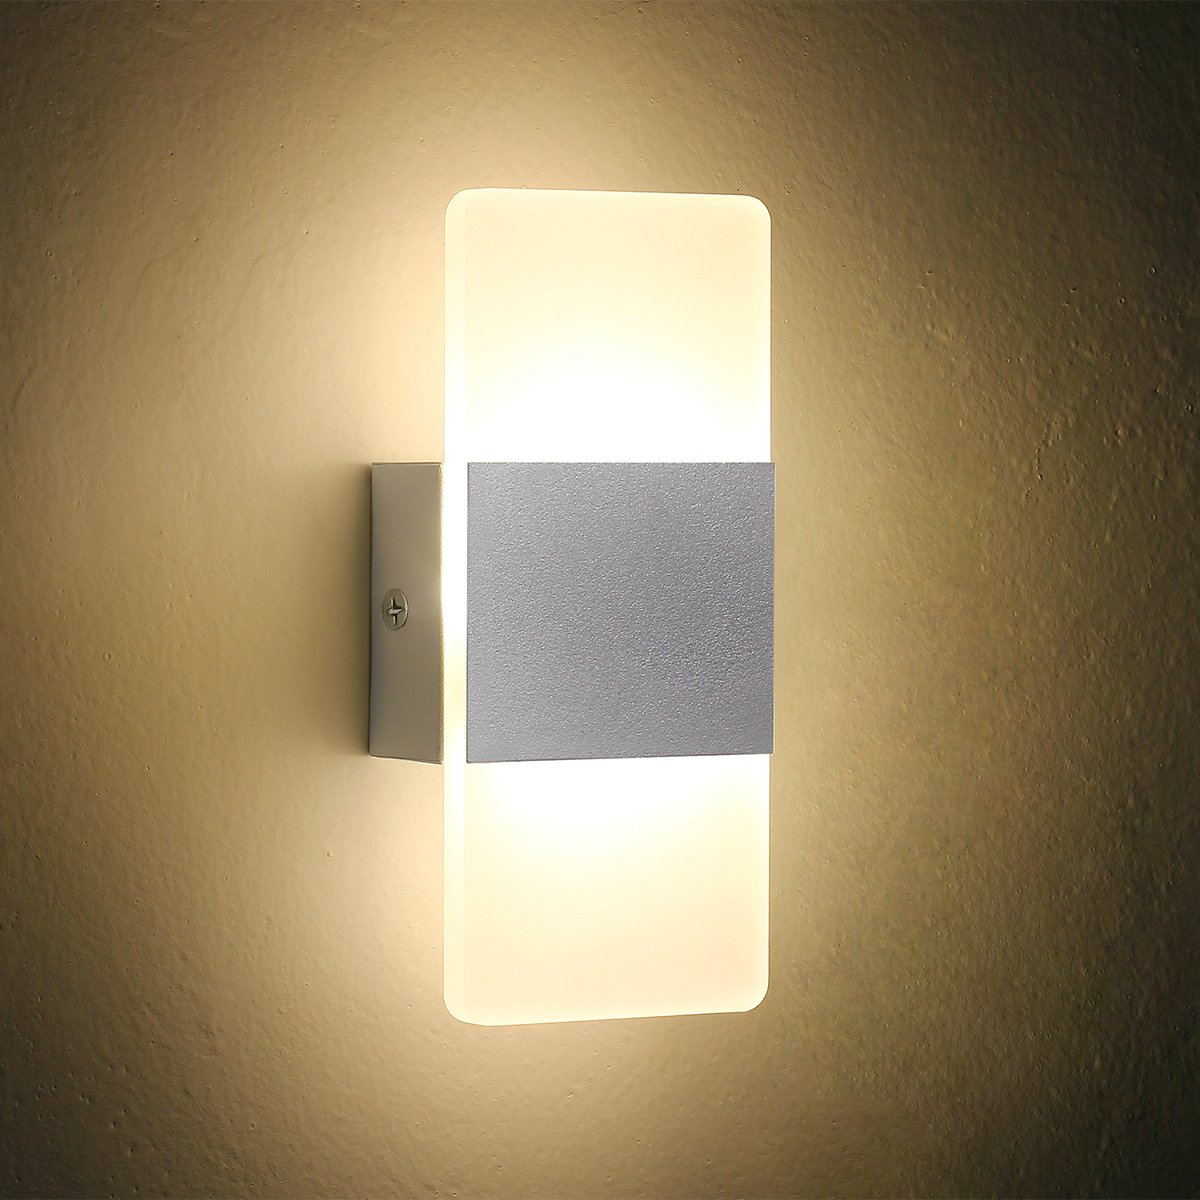 Oenbopo LED Wall Light Bedside Wall Lamp, Modern Acrylic LED Bedroom  Hallway Bathroom Wall Lamps